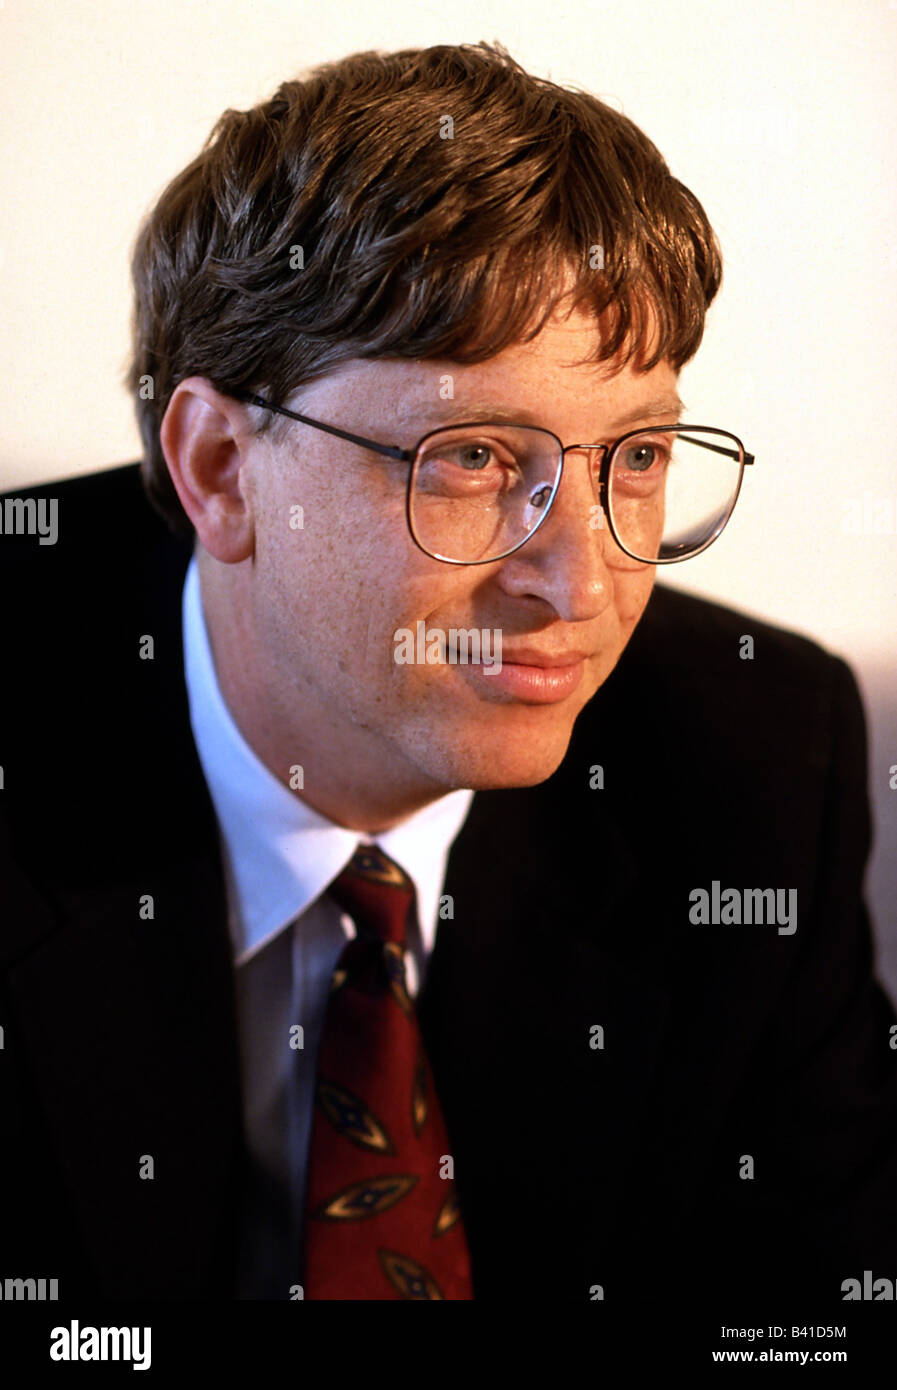 Gates, William, 'Bill', * 28.10.1955, American entrepreneur, (computing), co-founder, of Microsoft, Portrait, - Stock Image